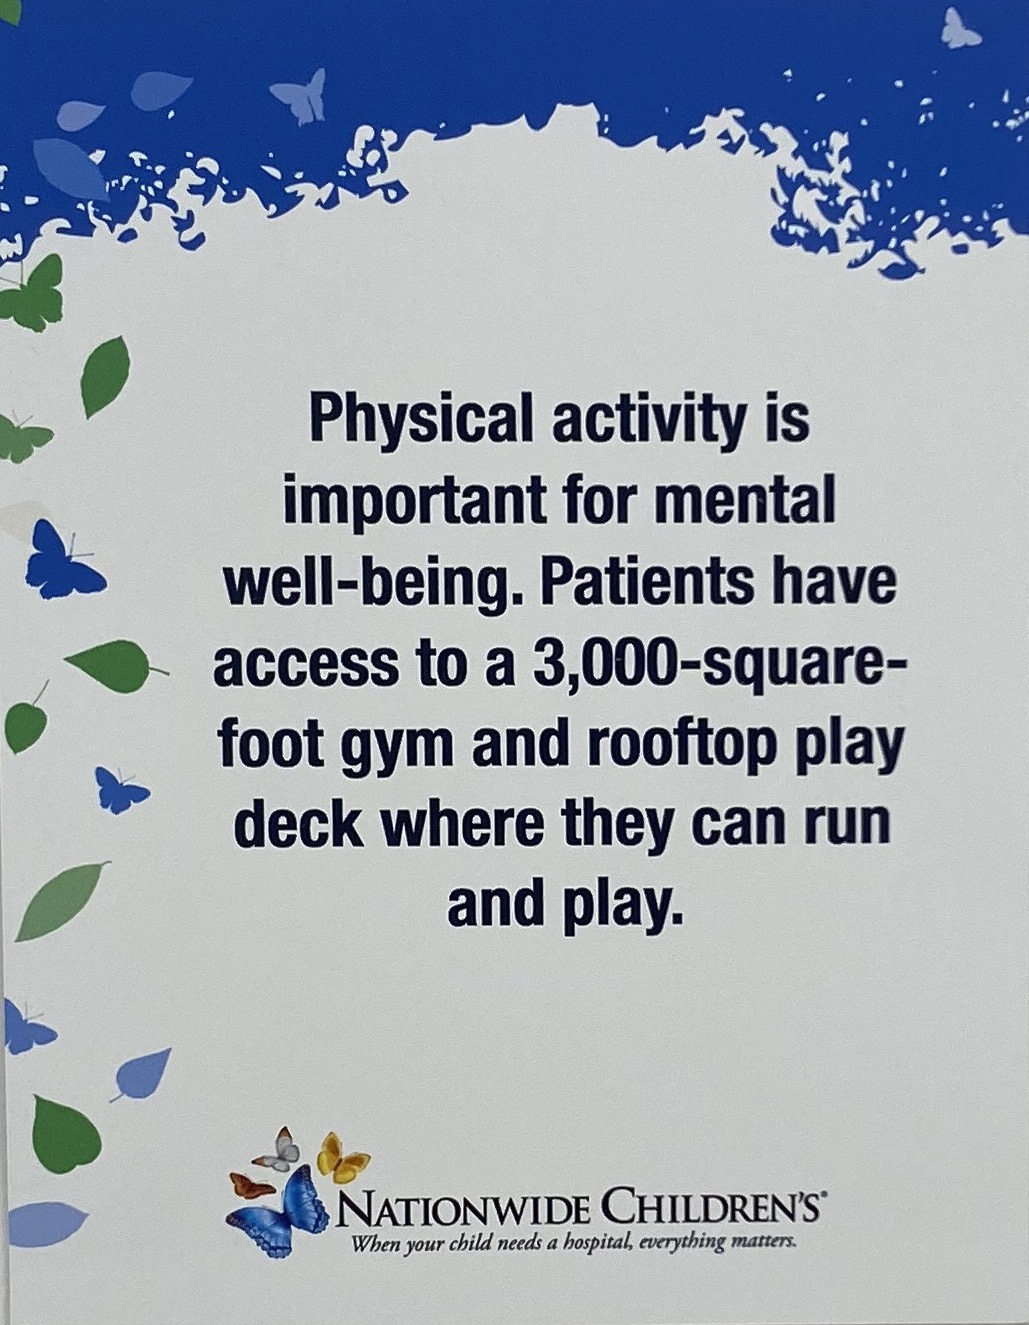 Physical activity is important for mental well-being.  Patients have access to a 3,000-square-foot gym and rooftop play deck where they can run and play.